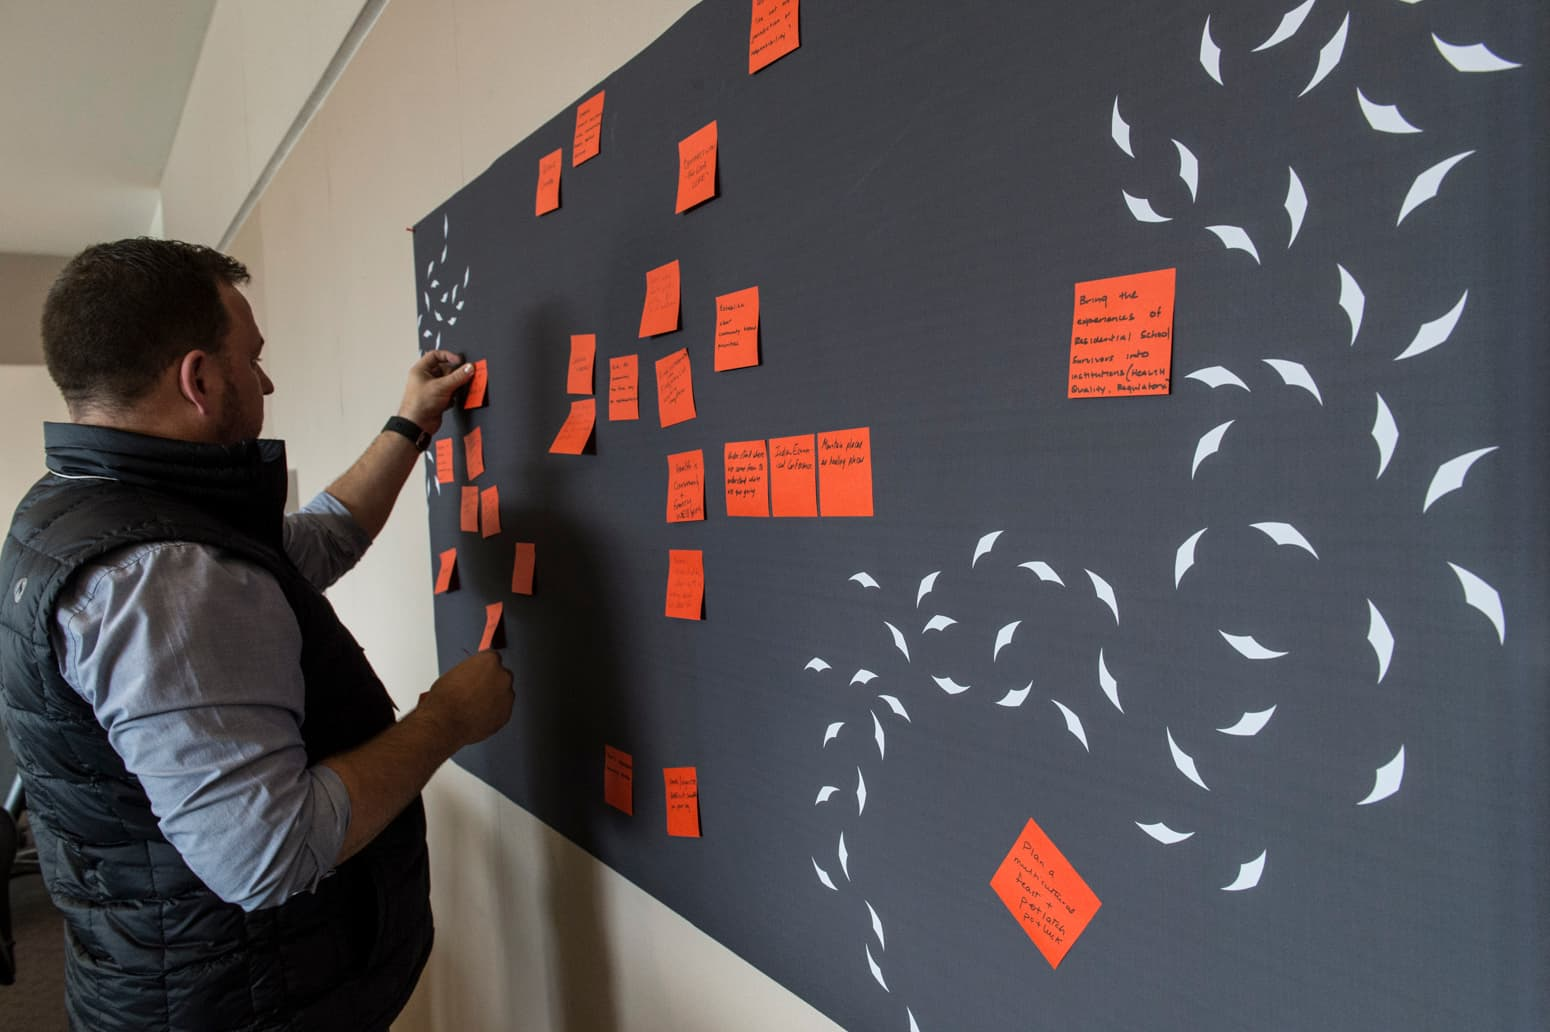 Truth and Reconciliation participant using sticky notes on a communal board